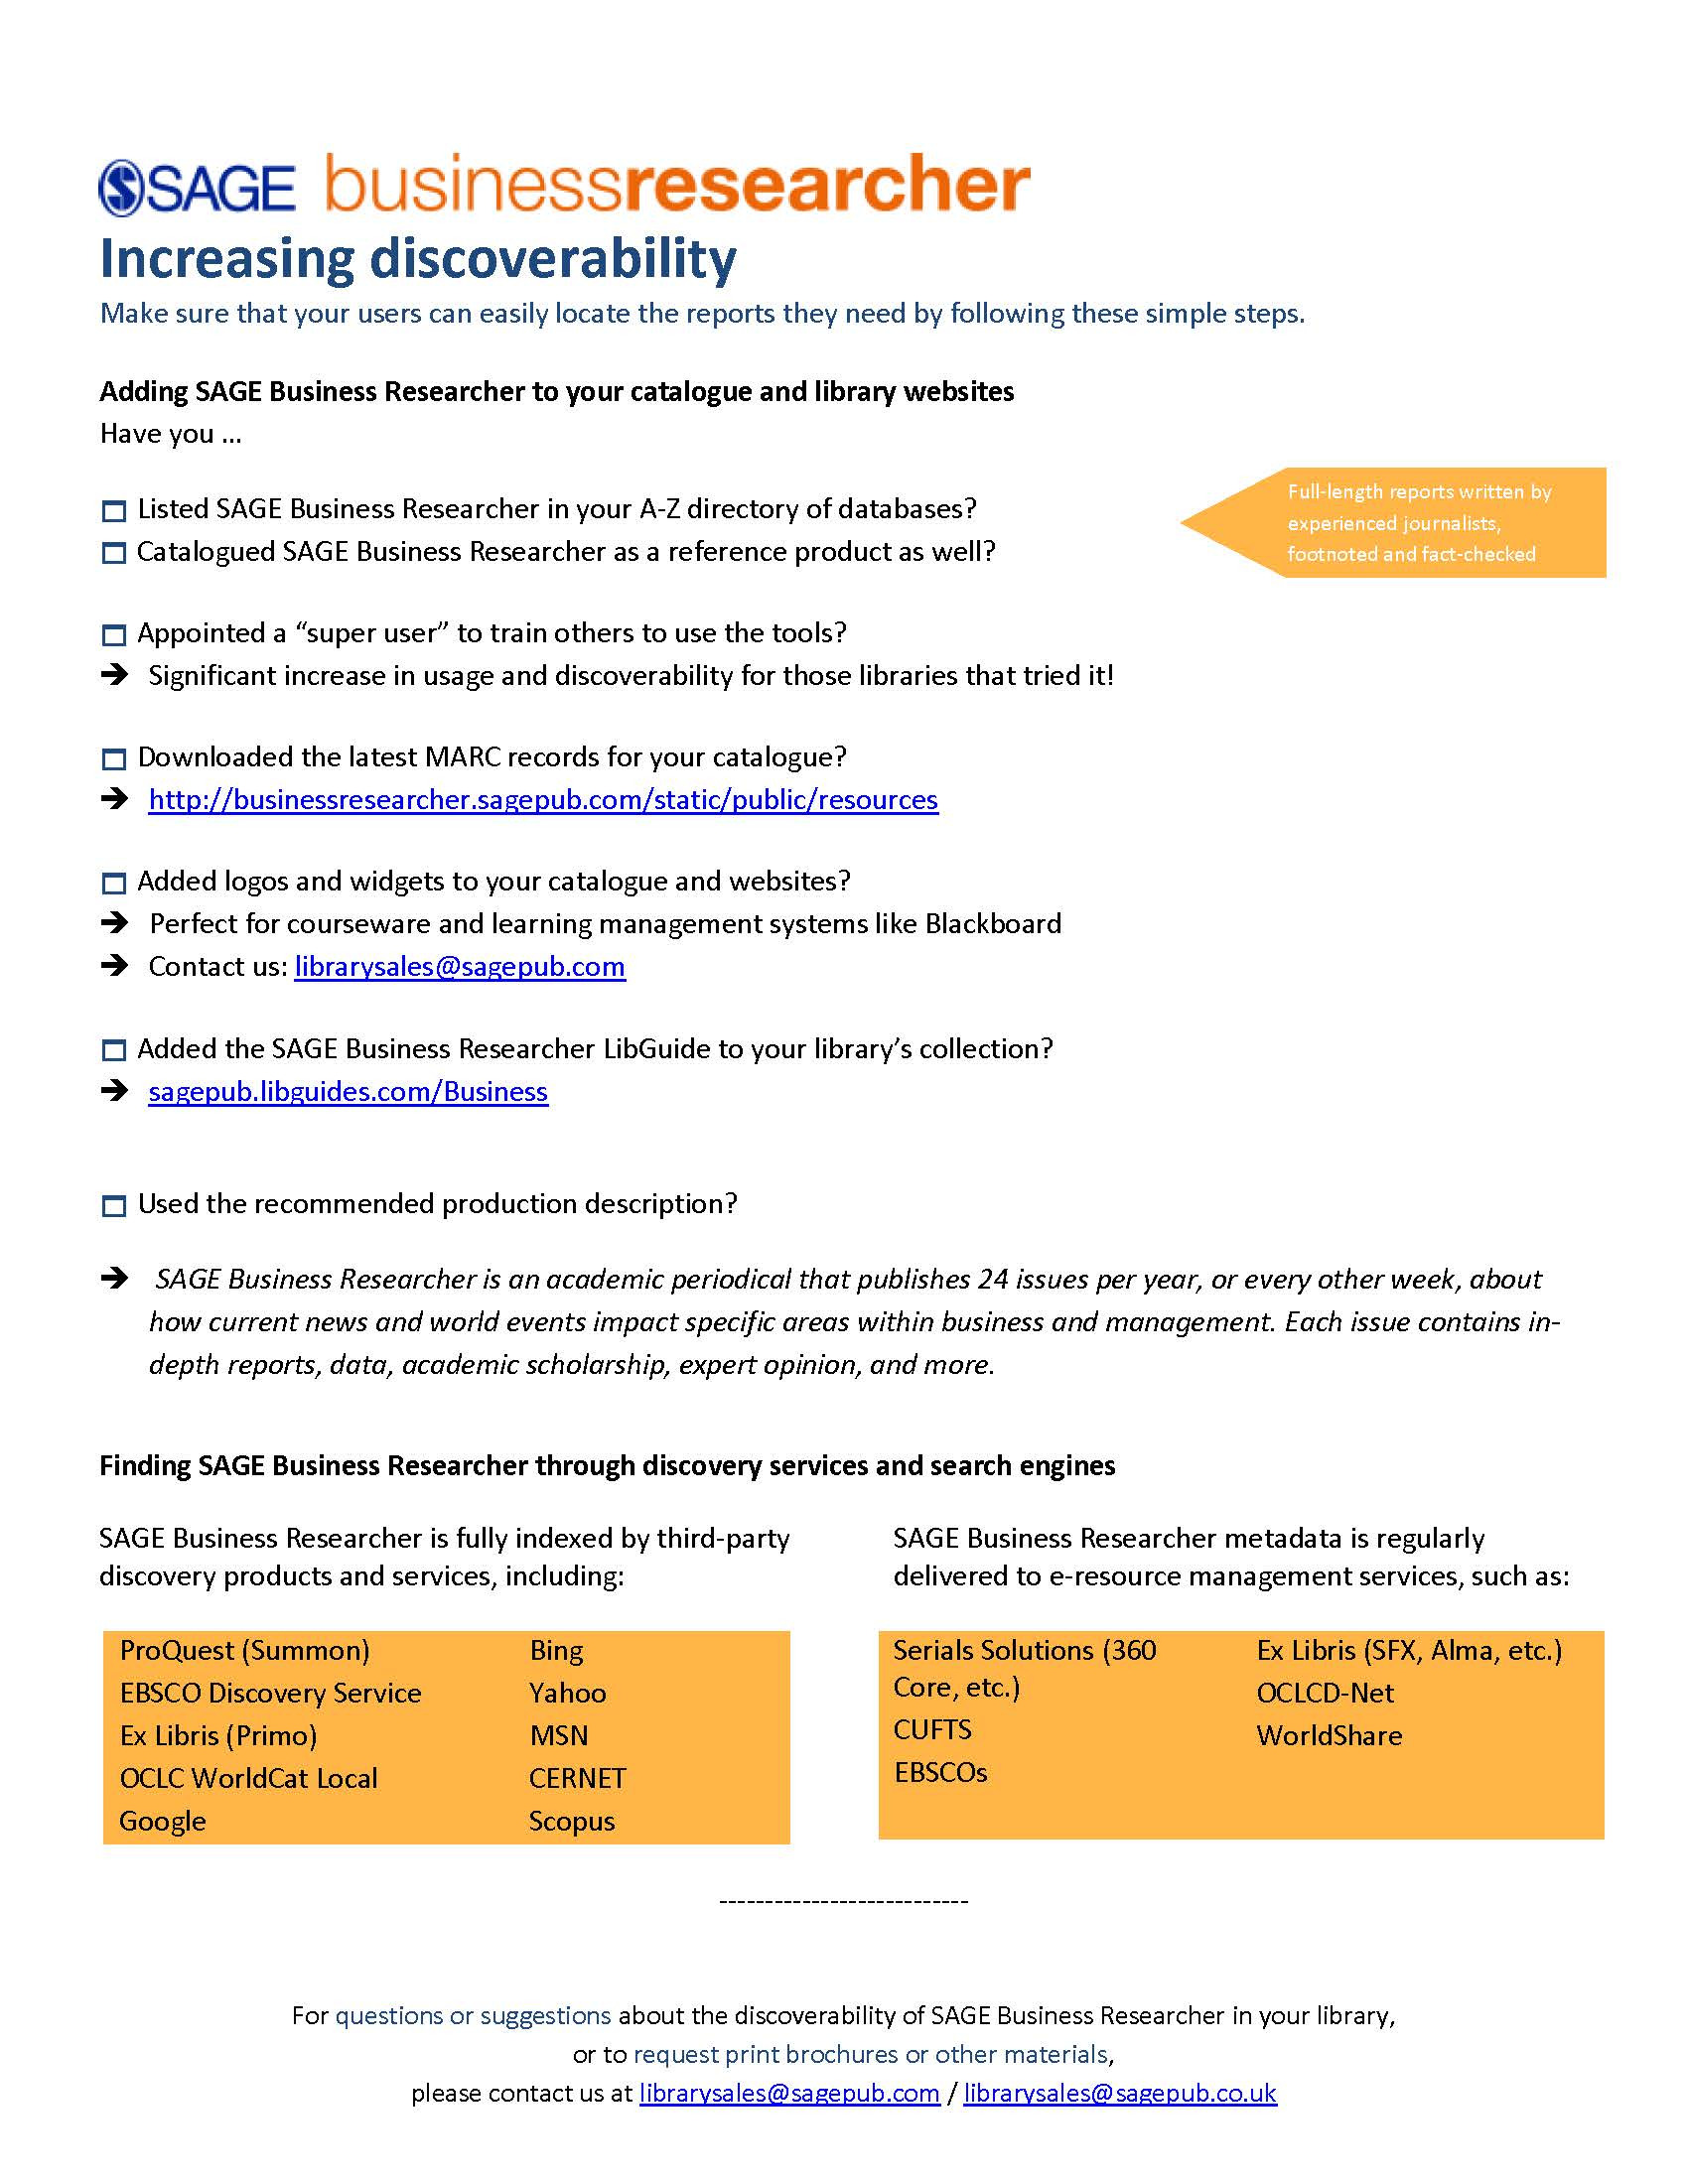 SAGE Business Researcher Discoverability Checklist